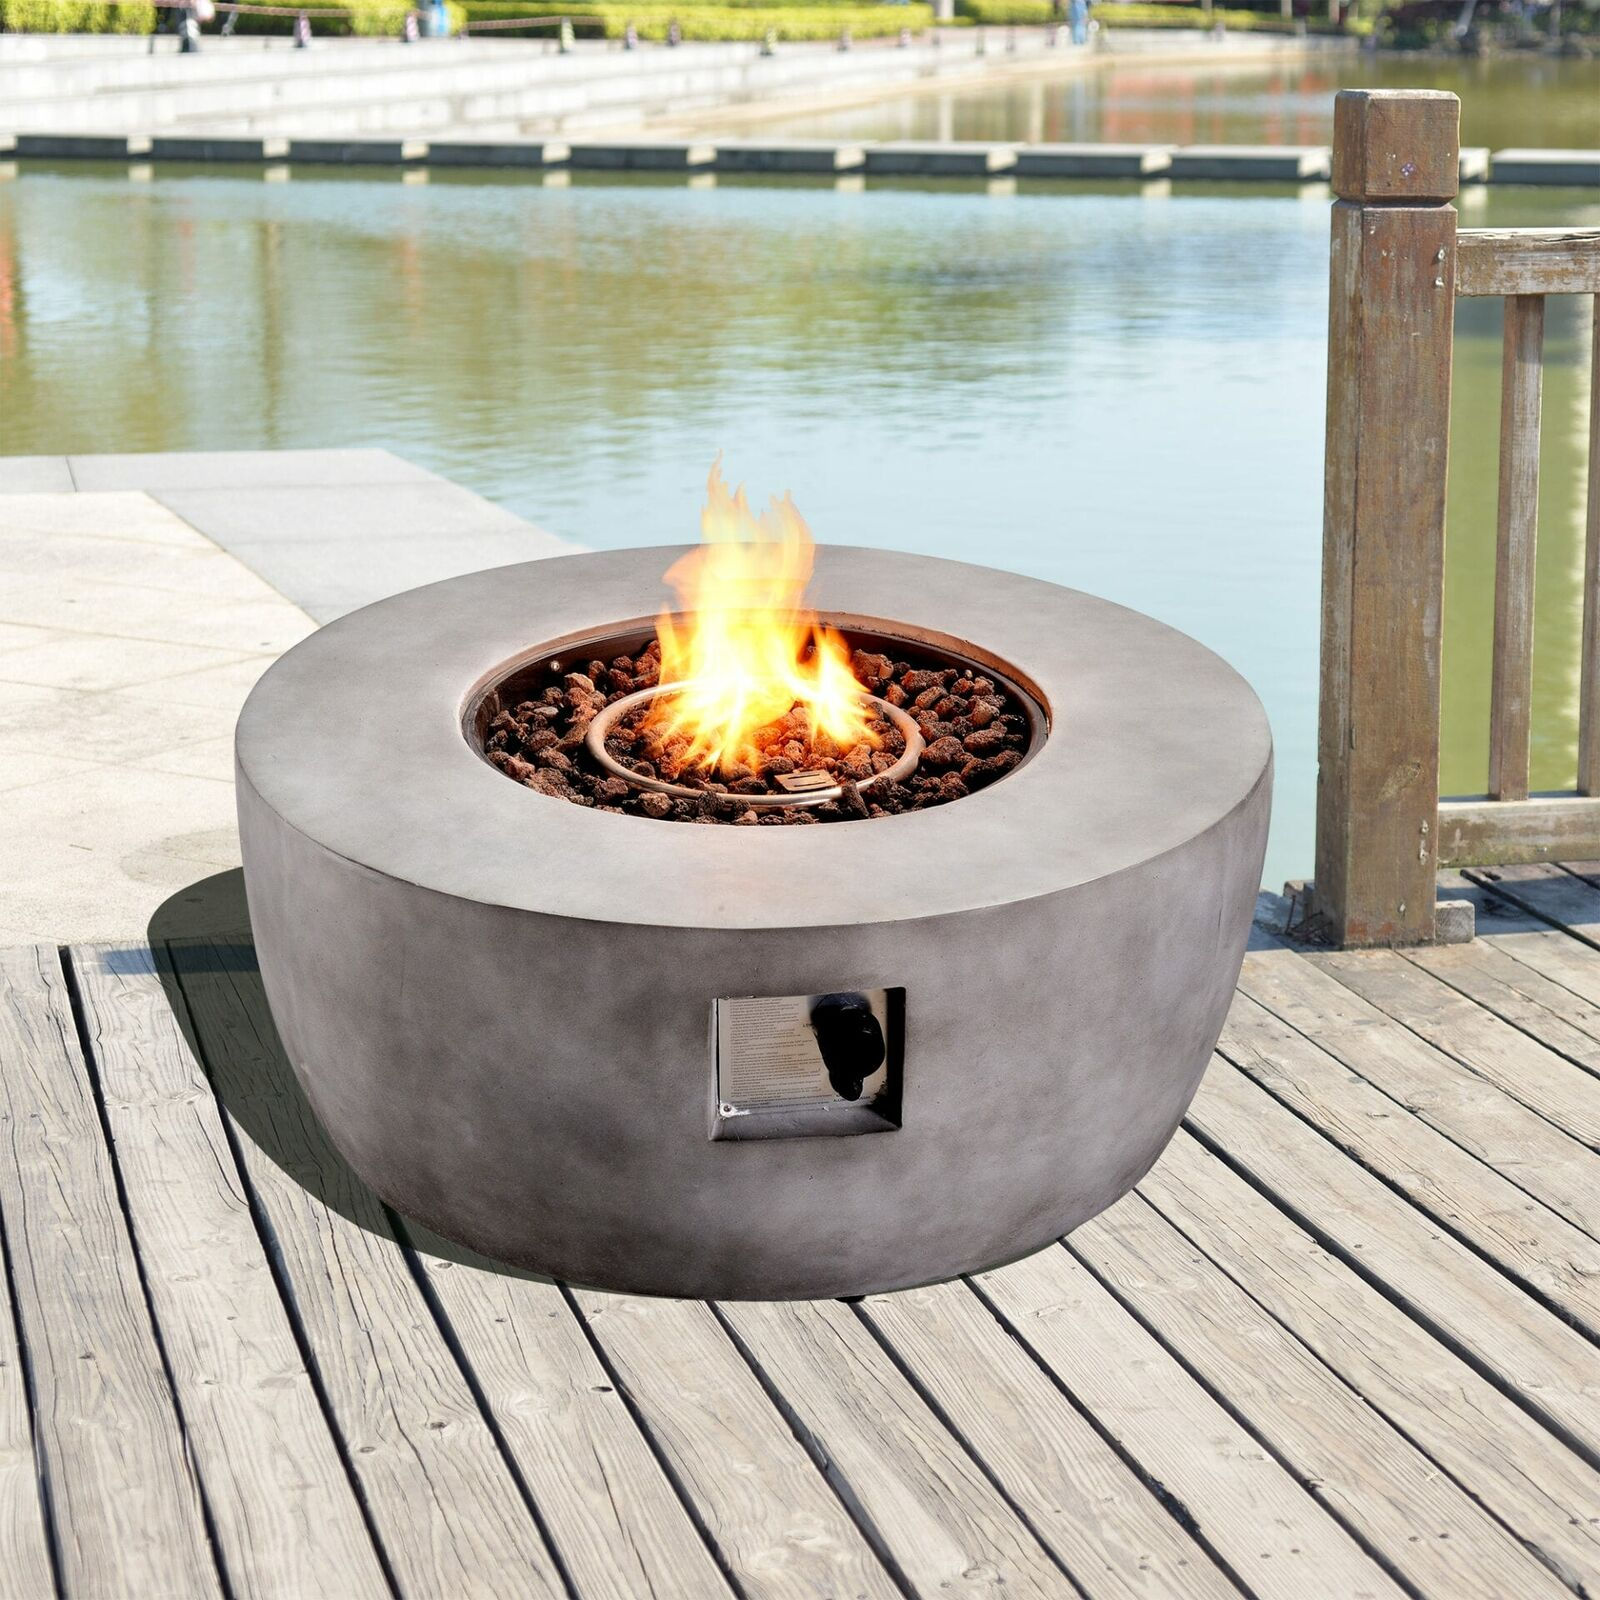 Peaktop Firepit Outdoor Gas Fire Pit Resin With Lava Rock & Cover HF36501AA-UK